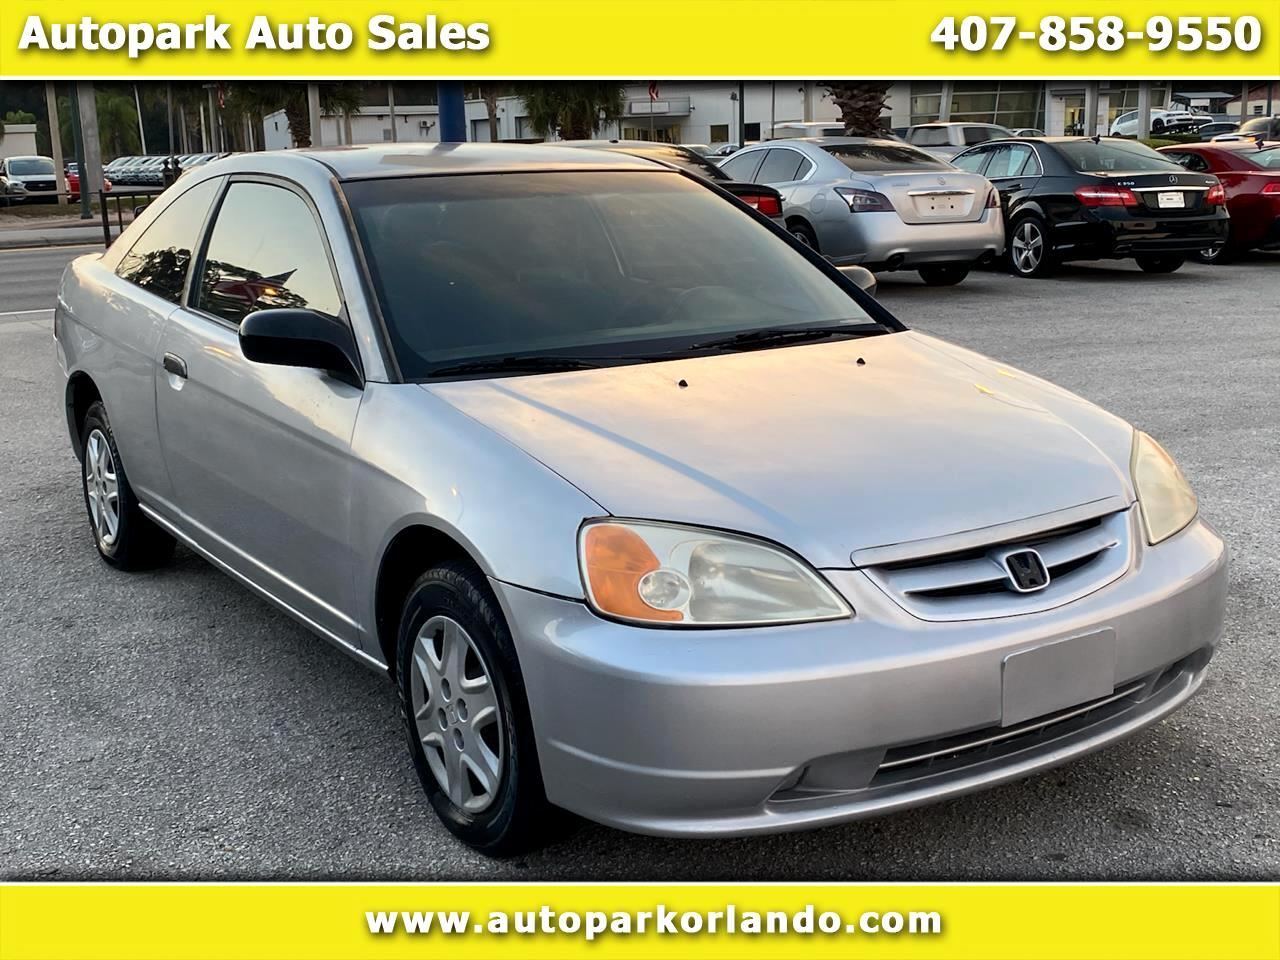 Honda Civic 2dr Cpe DX Auto w/Side Airbags 2003